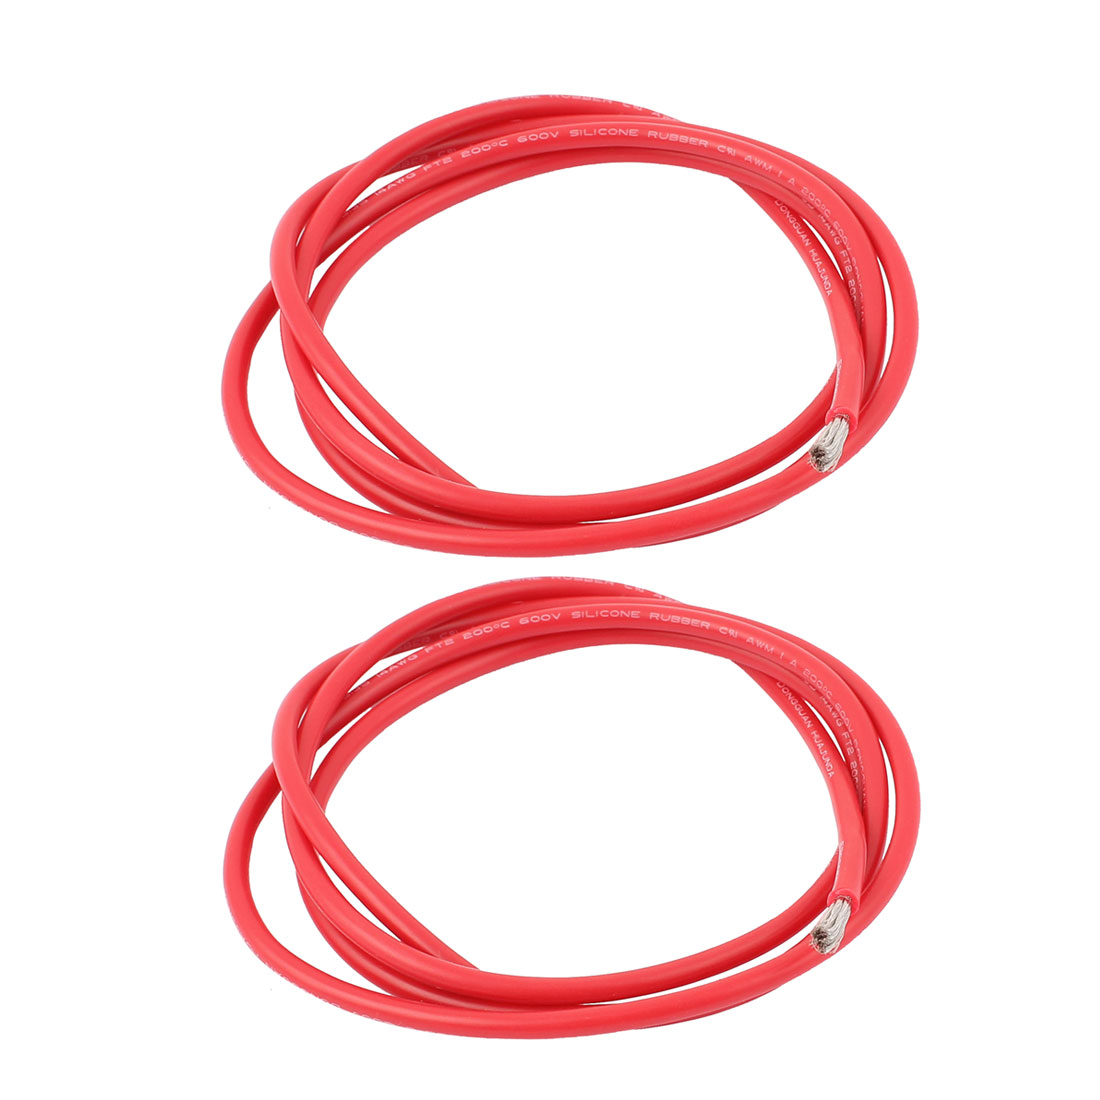 2Pcs 1M 14AWG High Temperature Resistant Soft Silicone Wires Red